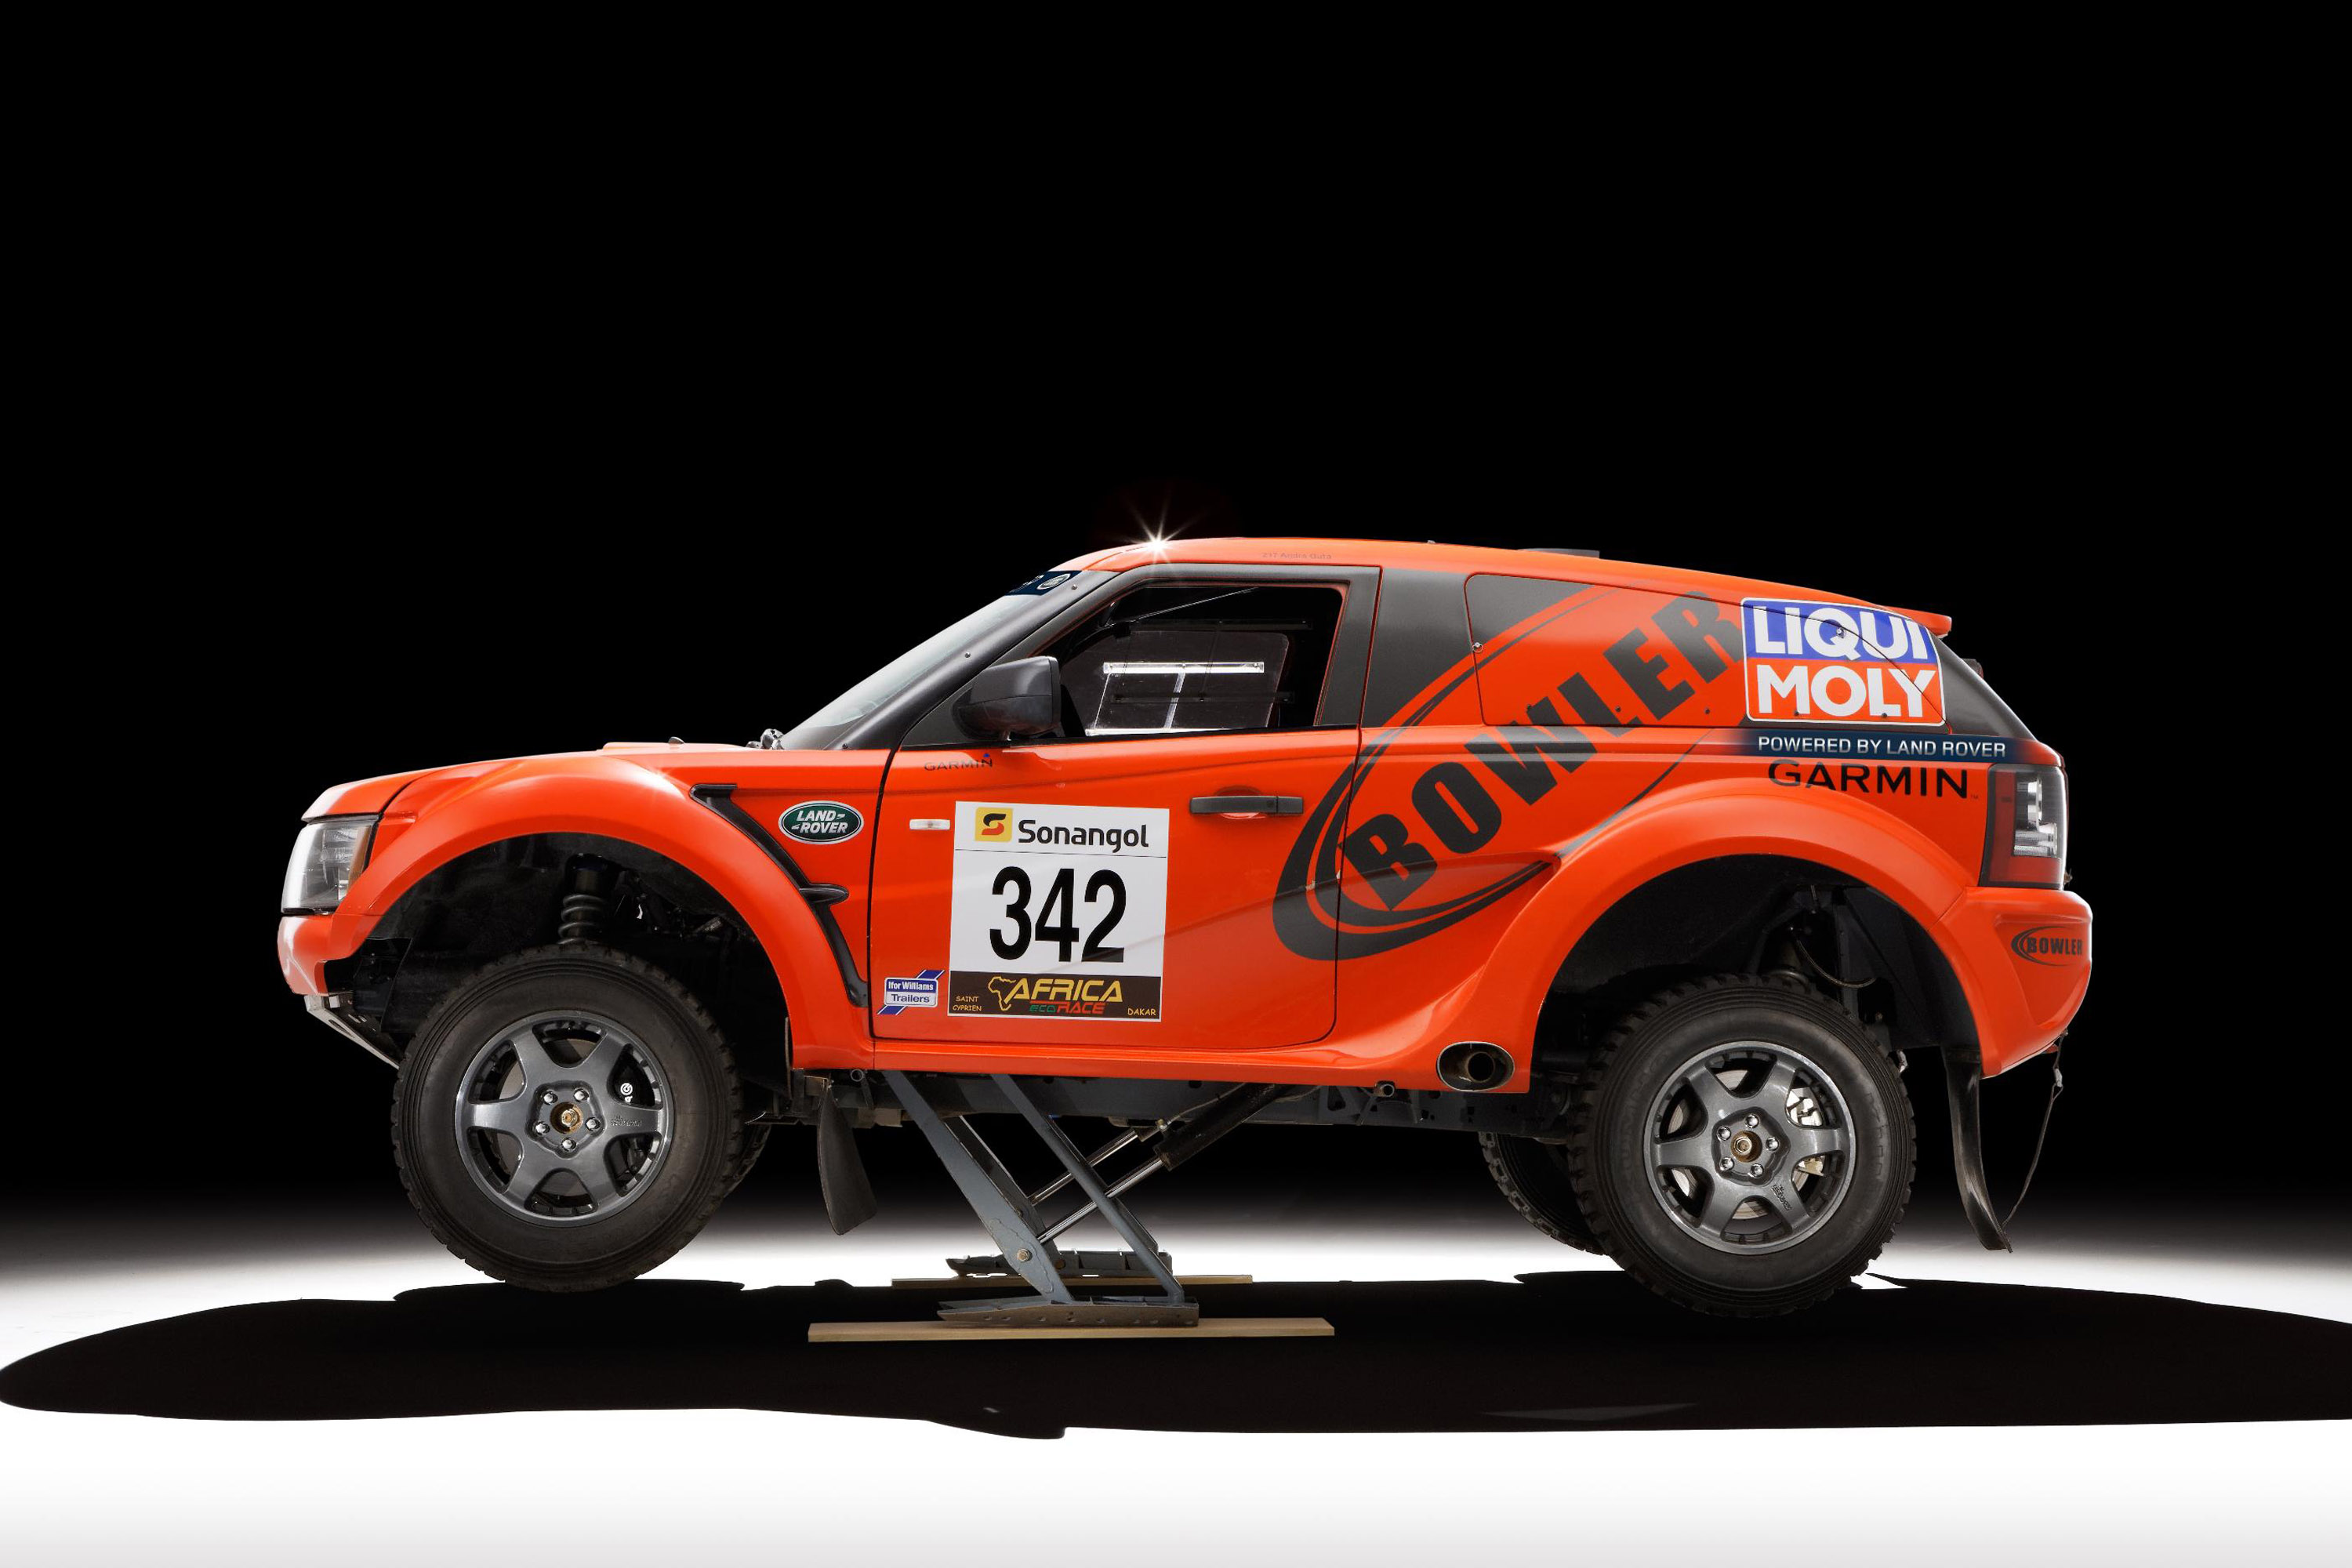 bowler exr rally car and exr s road car powered by land rover. Black Bedroom Furniture Sets. Home Design Ideas